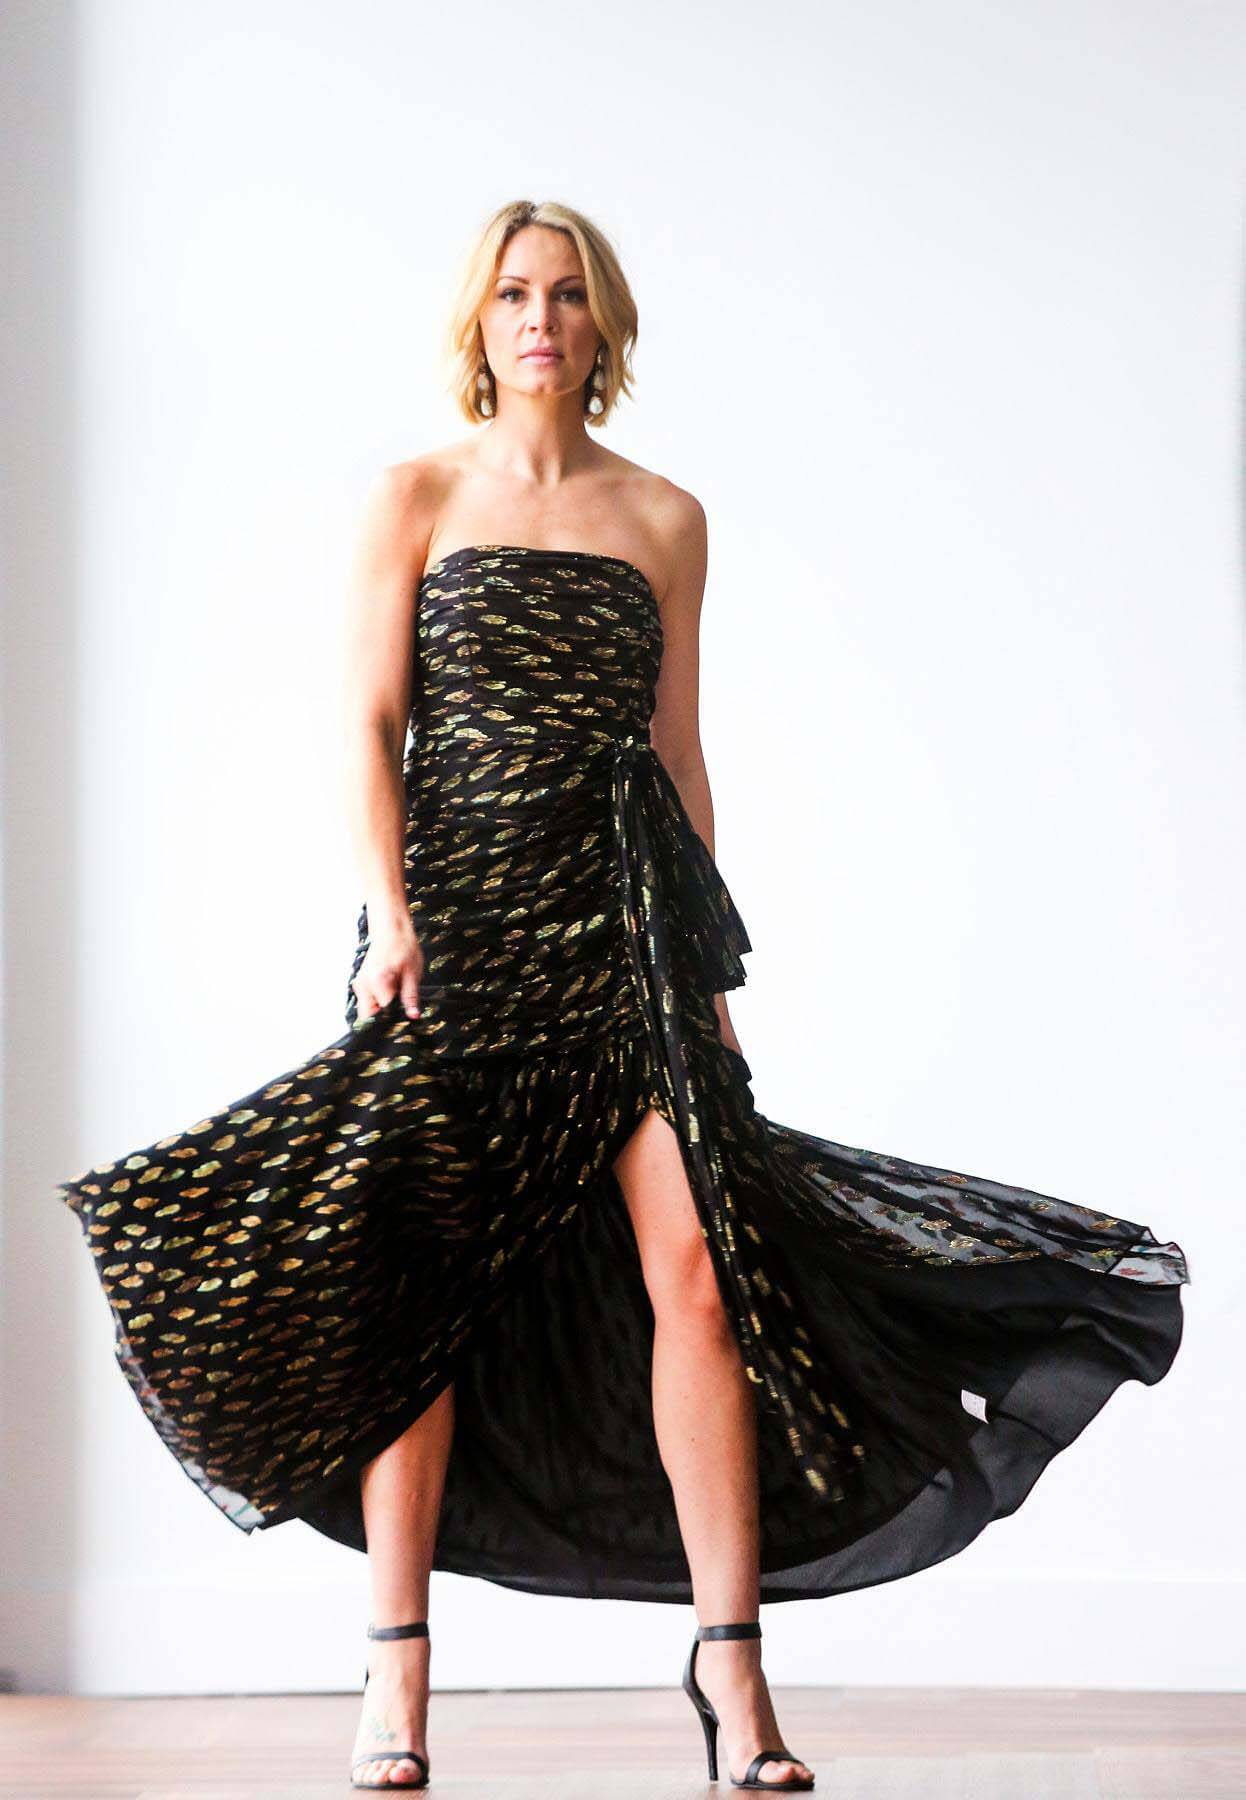 Strapless Gus Mayer evening gown on model, for Nashville Fashion Week 2020